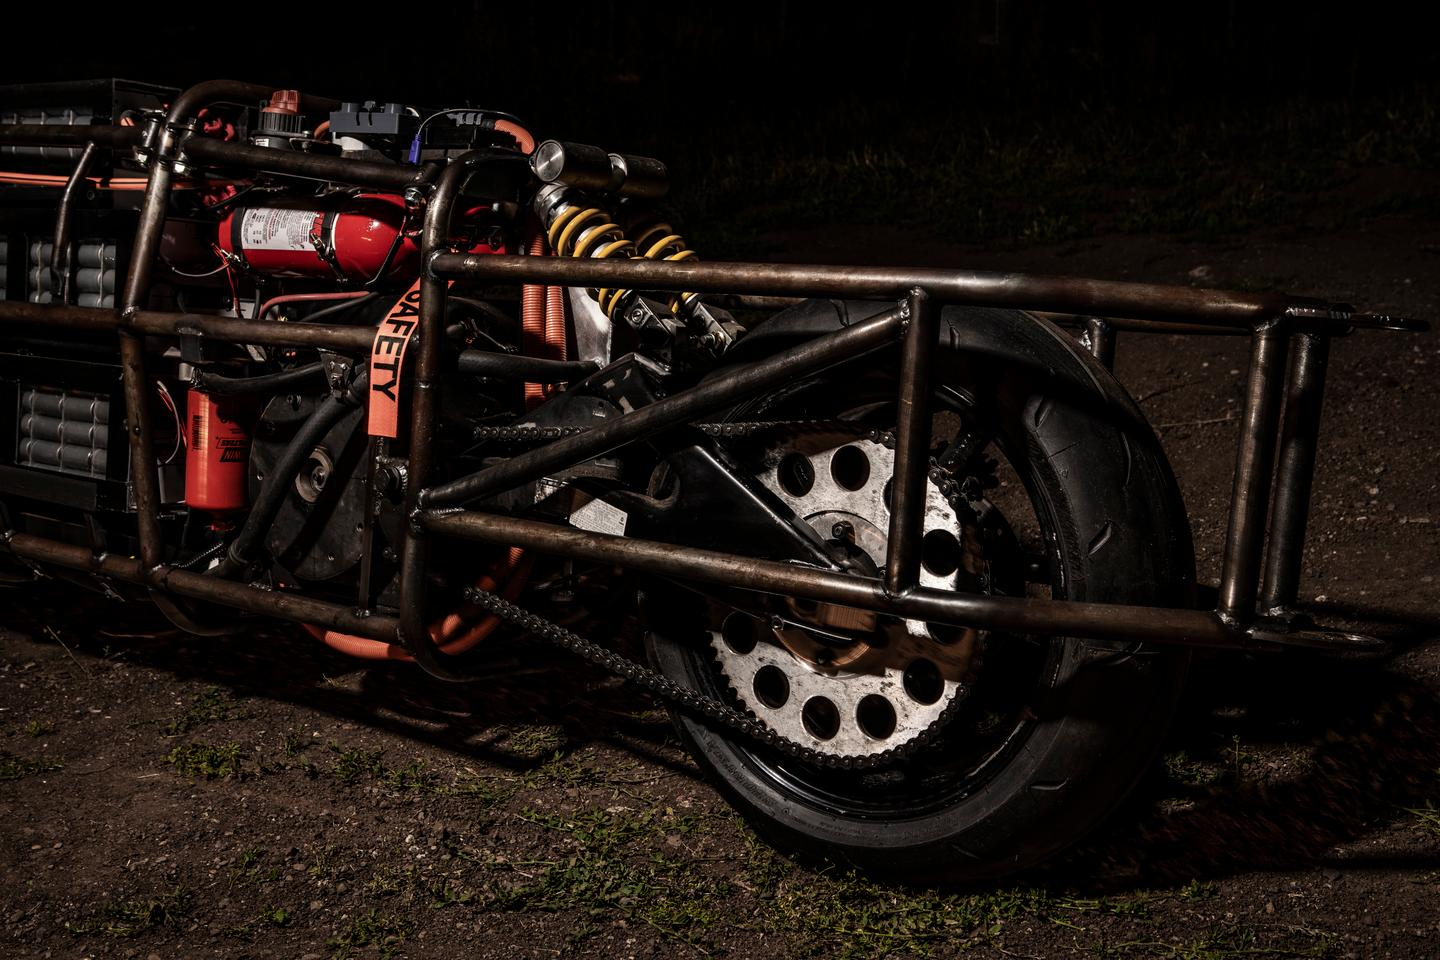 Rear wheel and twin shock suspension